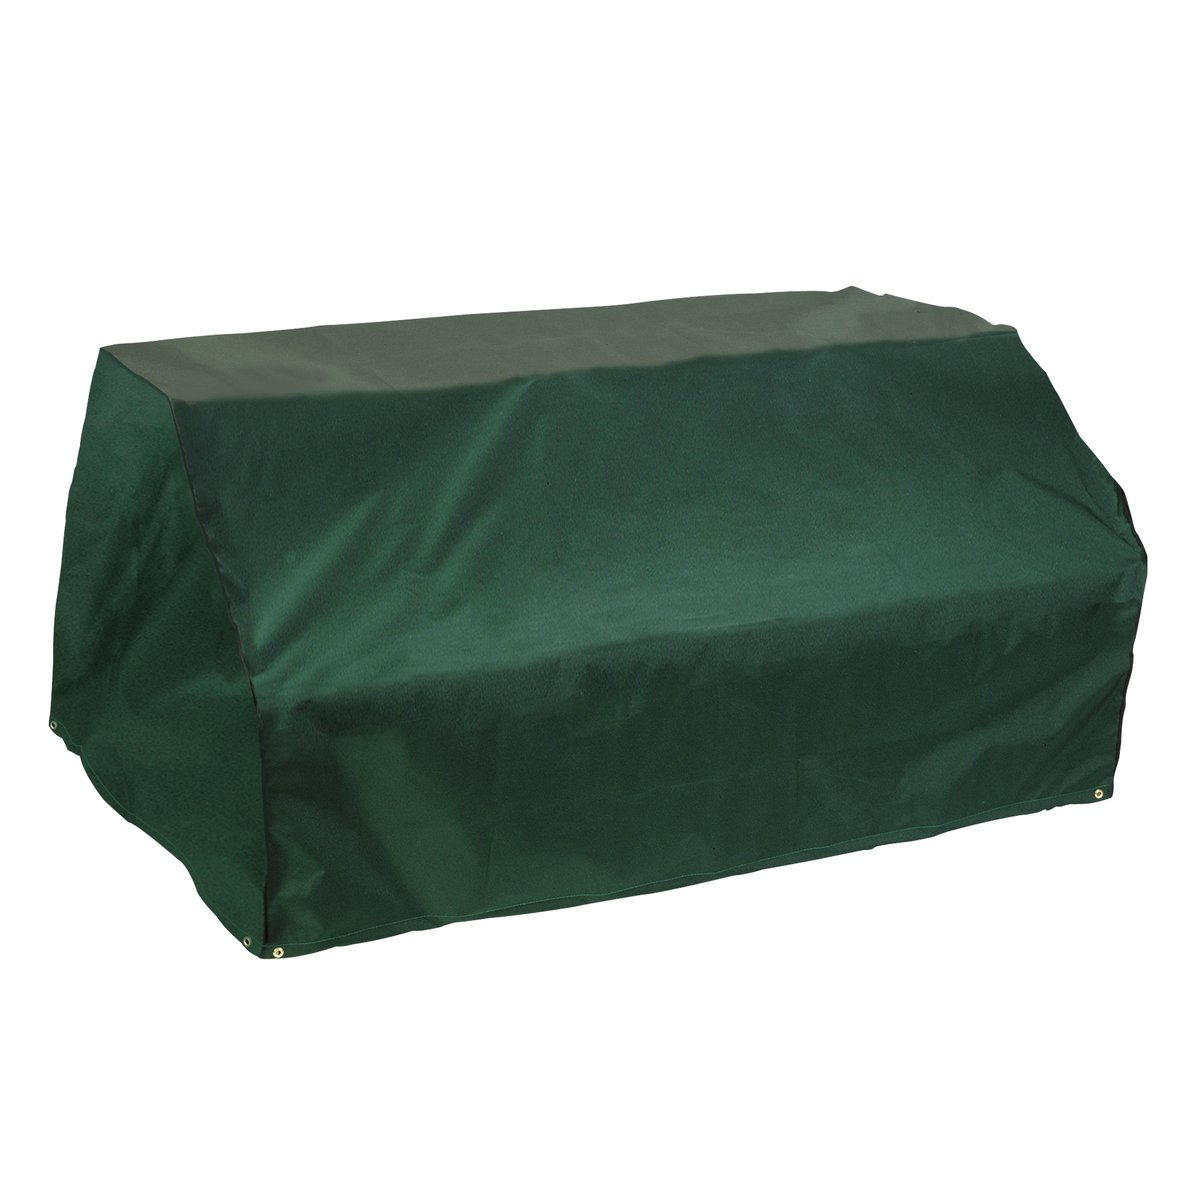 Bosmere C630 Weatherproof 8-Seat Picnic Table Cover, 76'' L x 62'' W x 32'' H, Green by Bosmere